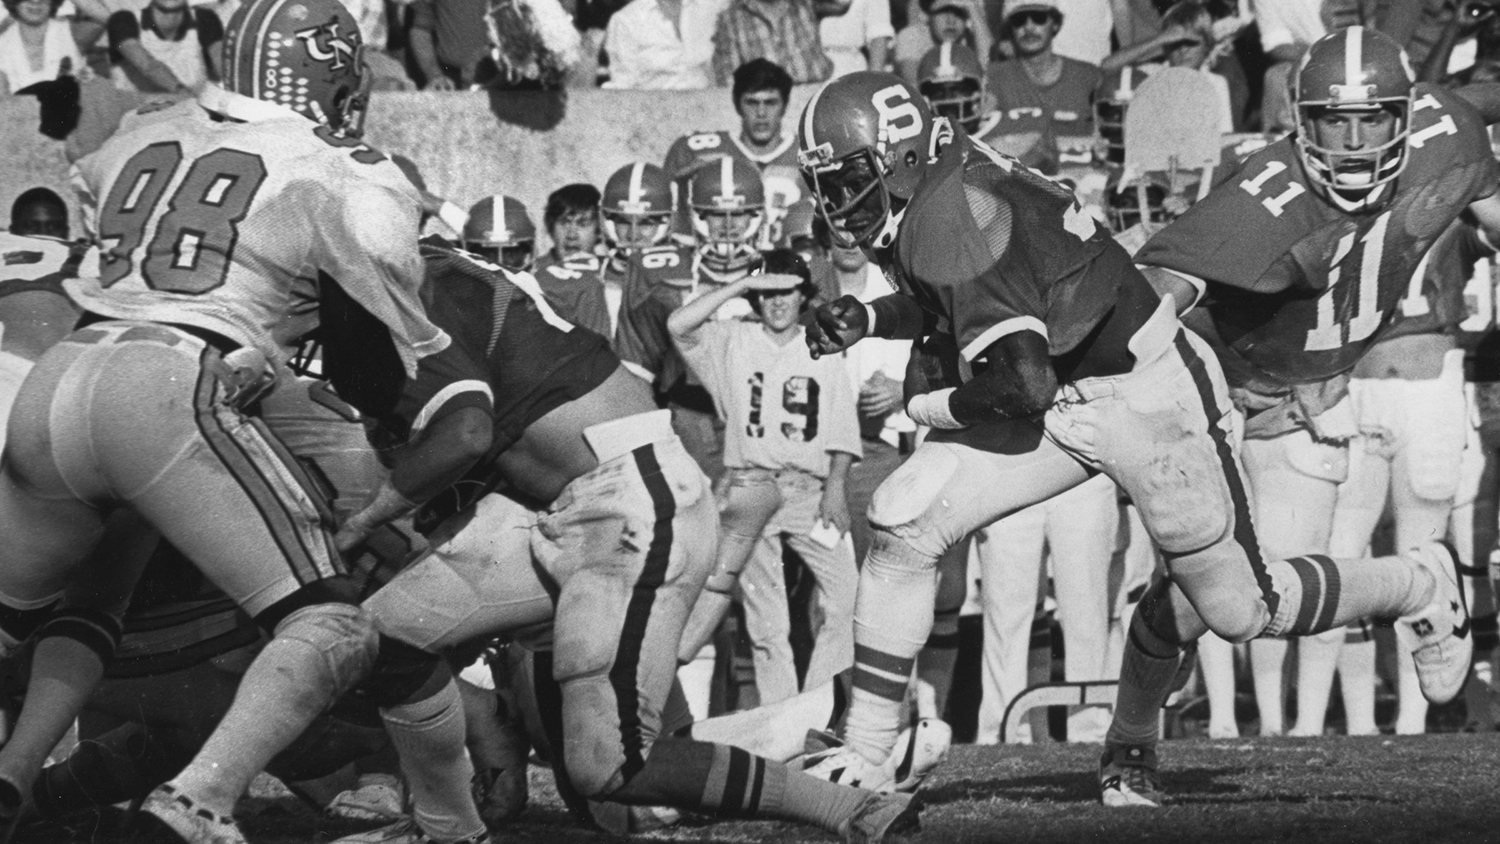 Billy Ray Vickers carries the ball down field in a Technician photo, circa 1979.